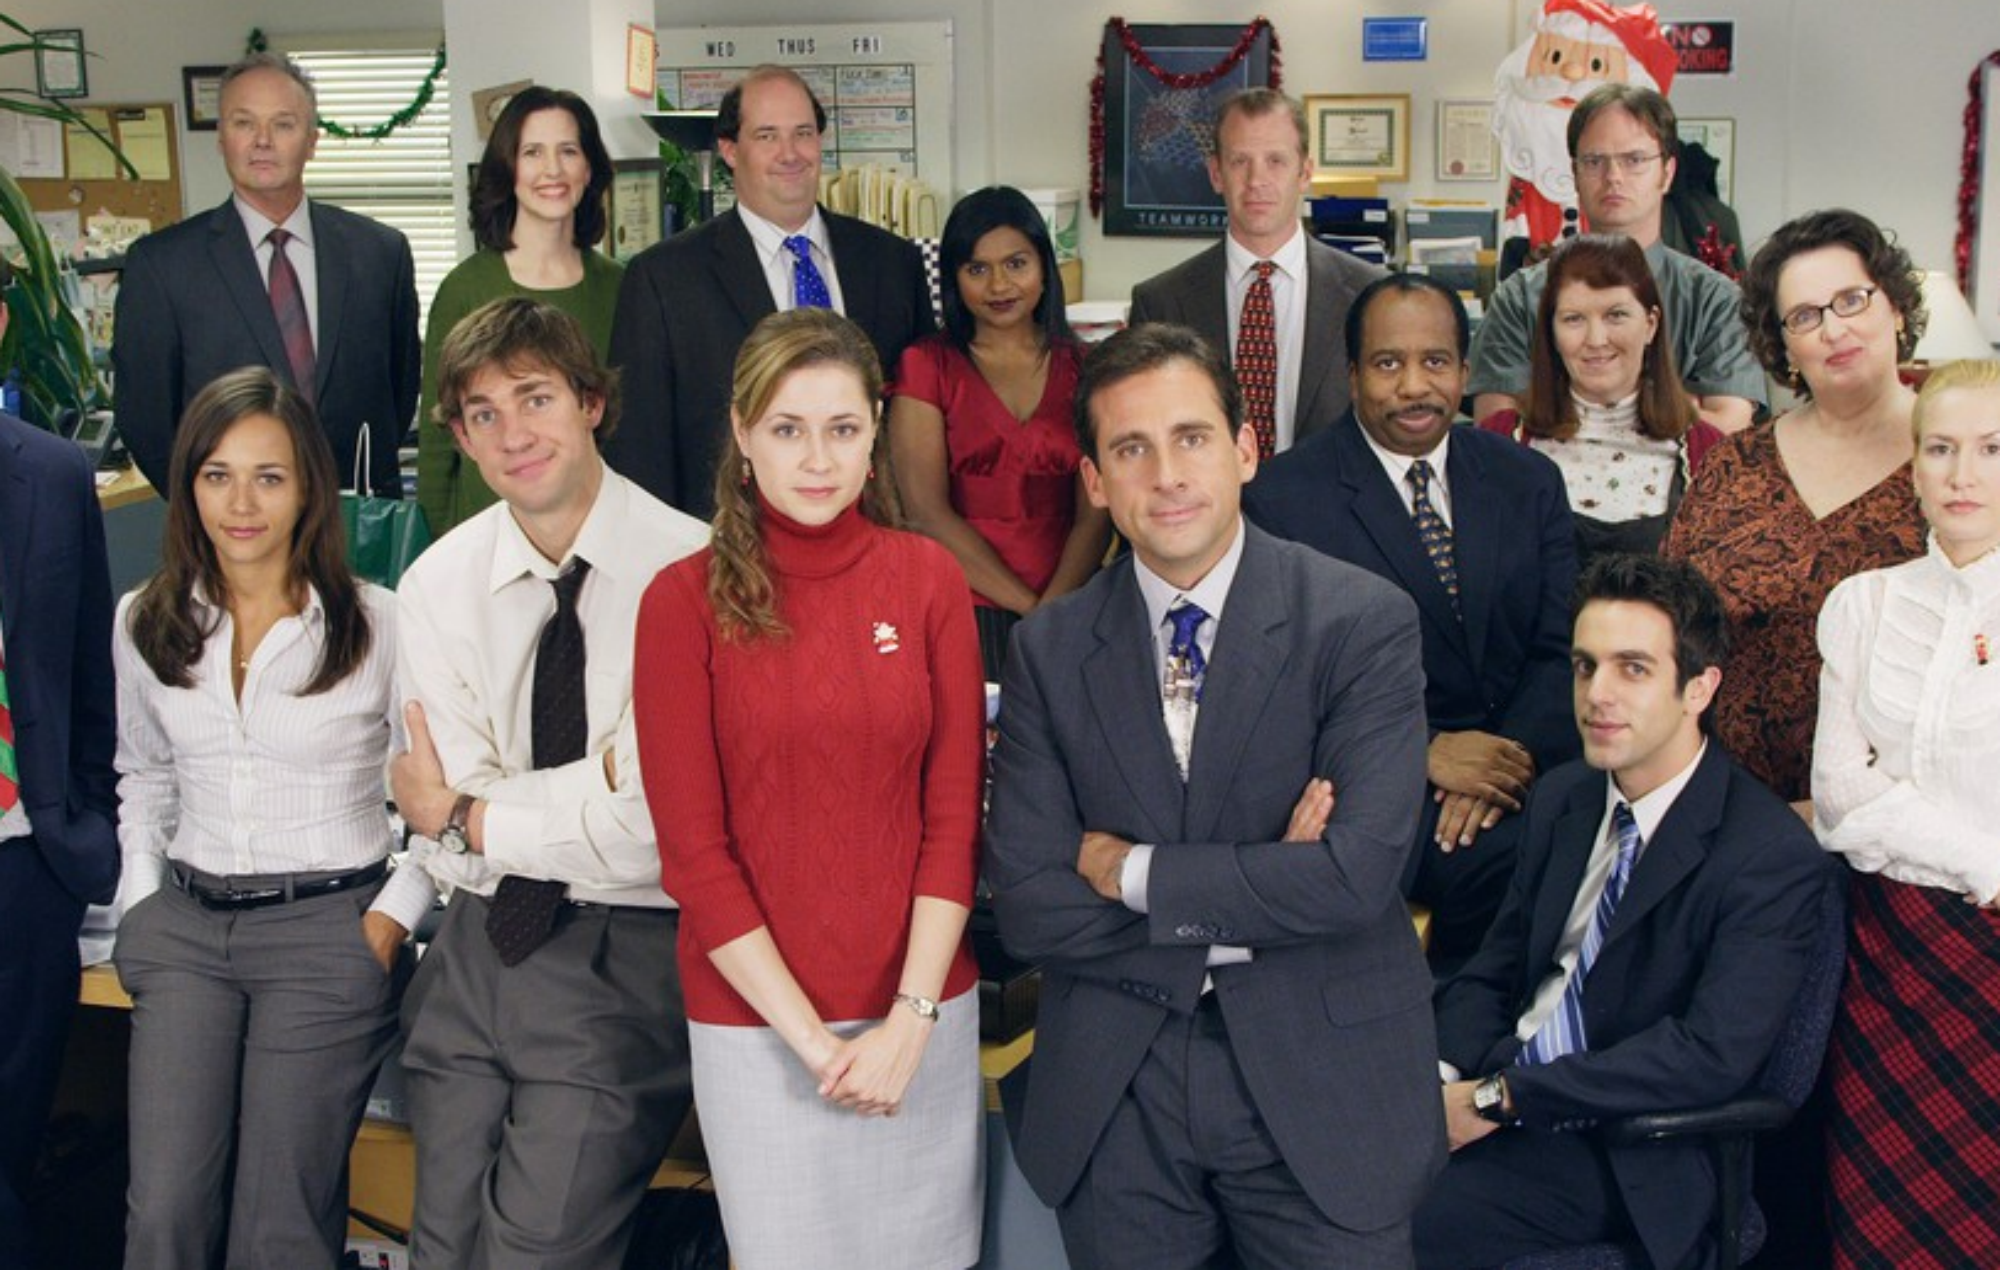 Okay, it's happening! Listen to the first episode of new 'The Office' podcast 'Office Ladies'